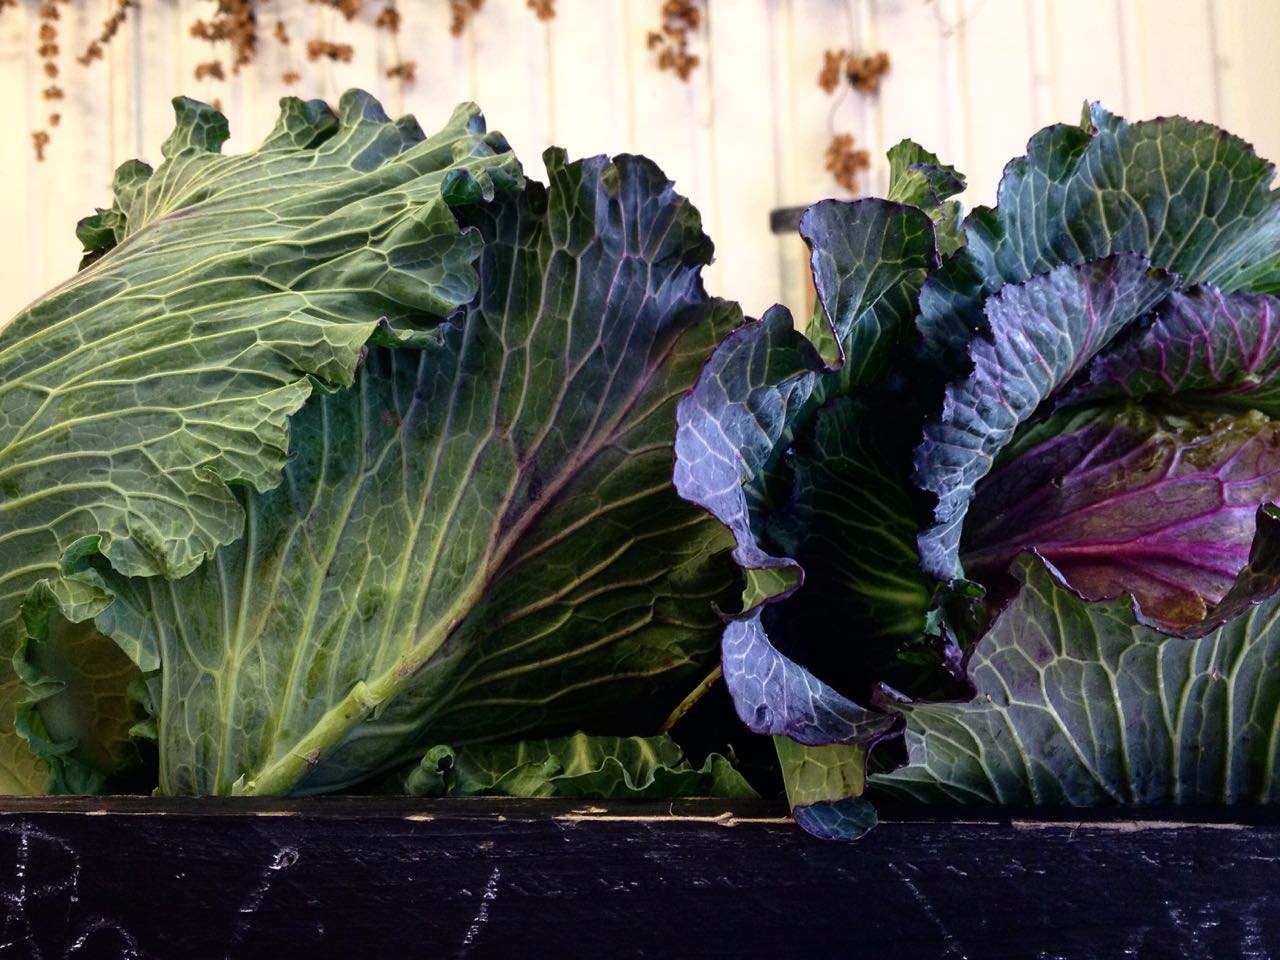 January King Cabbages    Photo ©Evie Saffron Strands       FEBRUARY      January was a month when no two days seemed alike with oddly fluctuating temperatures but British-grown Brassicas and roots seemed to cope well.  In our January Report, we promised you Sicilian Citrus and it was worth waiting for.  Tarocco blood oranges, Nova Mandarins and Pink Grapefruits came on our direct-sourced pallets, and there is more citrus to look forward to this month.  Vibrant pink spears of Forced Yorkshire Rhubarb brought more colour and acidity to our shelves and the first fronds of crunchy, salty Agretti arrived too.